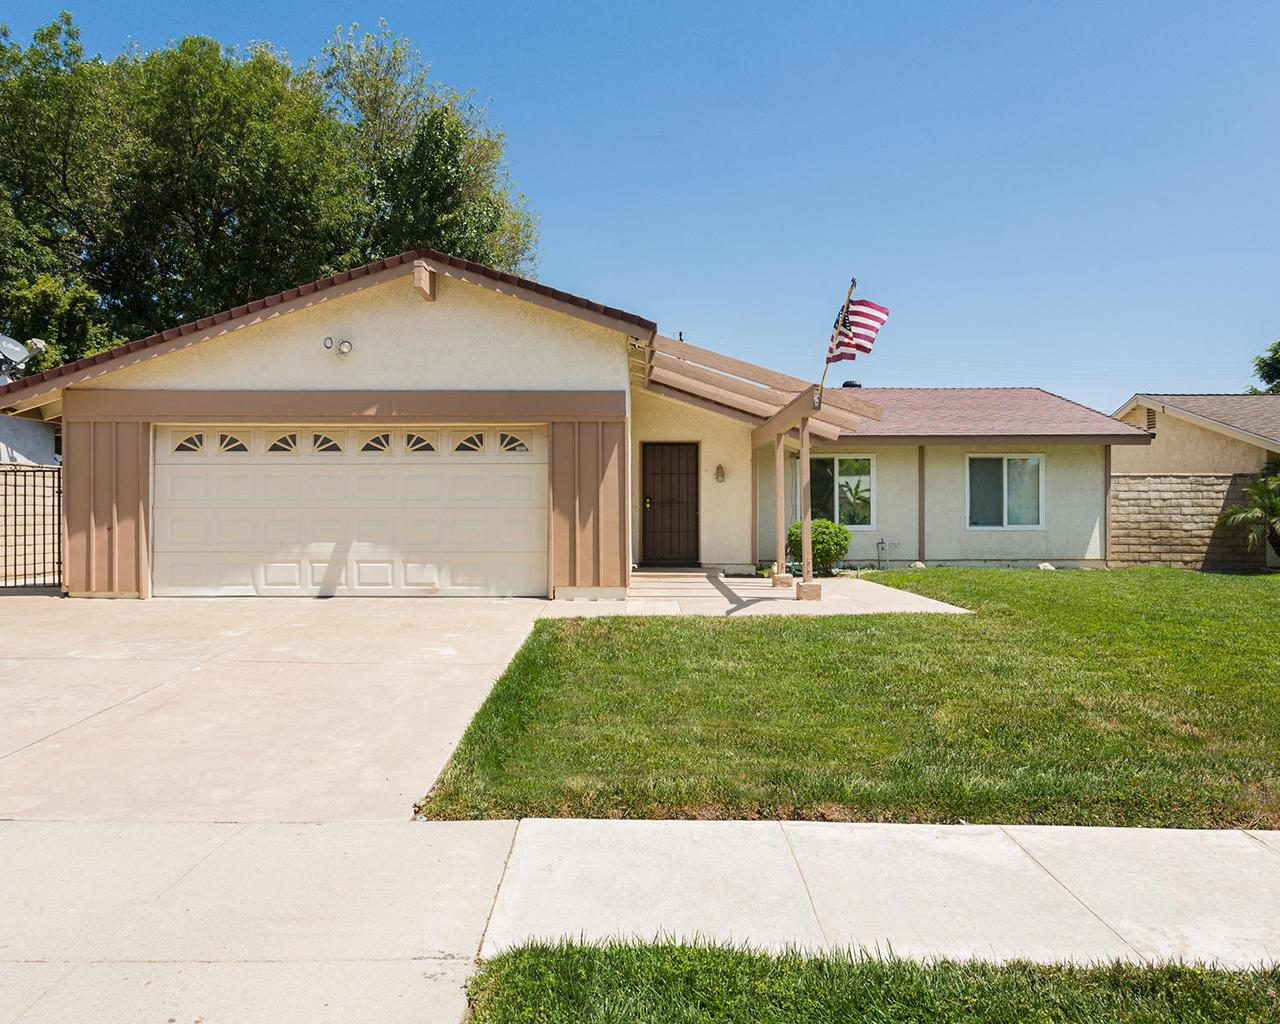 Houses for sale in simi valley ca